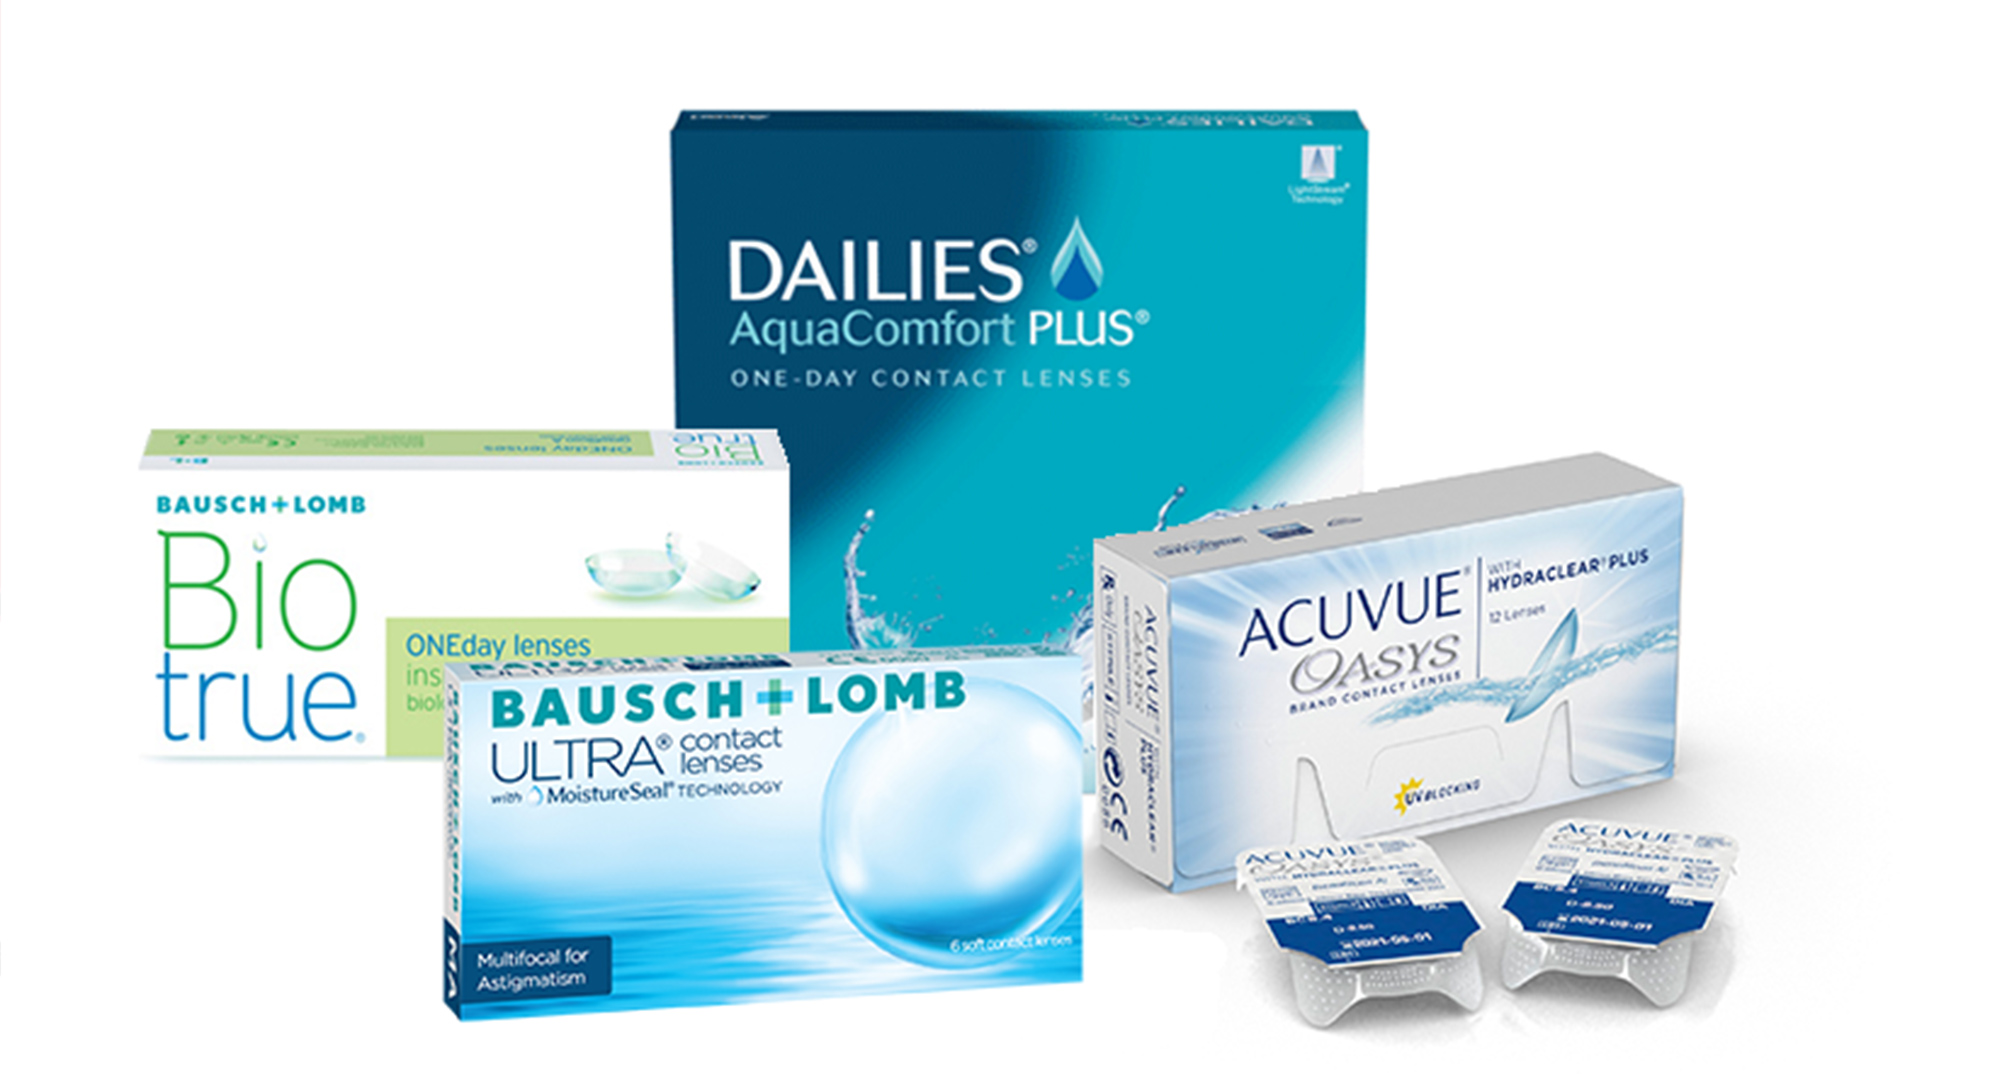 Assorted contact lens boxes